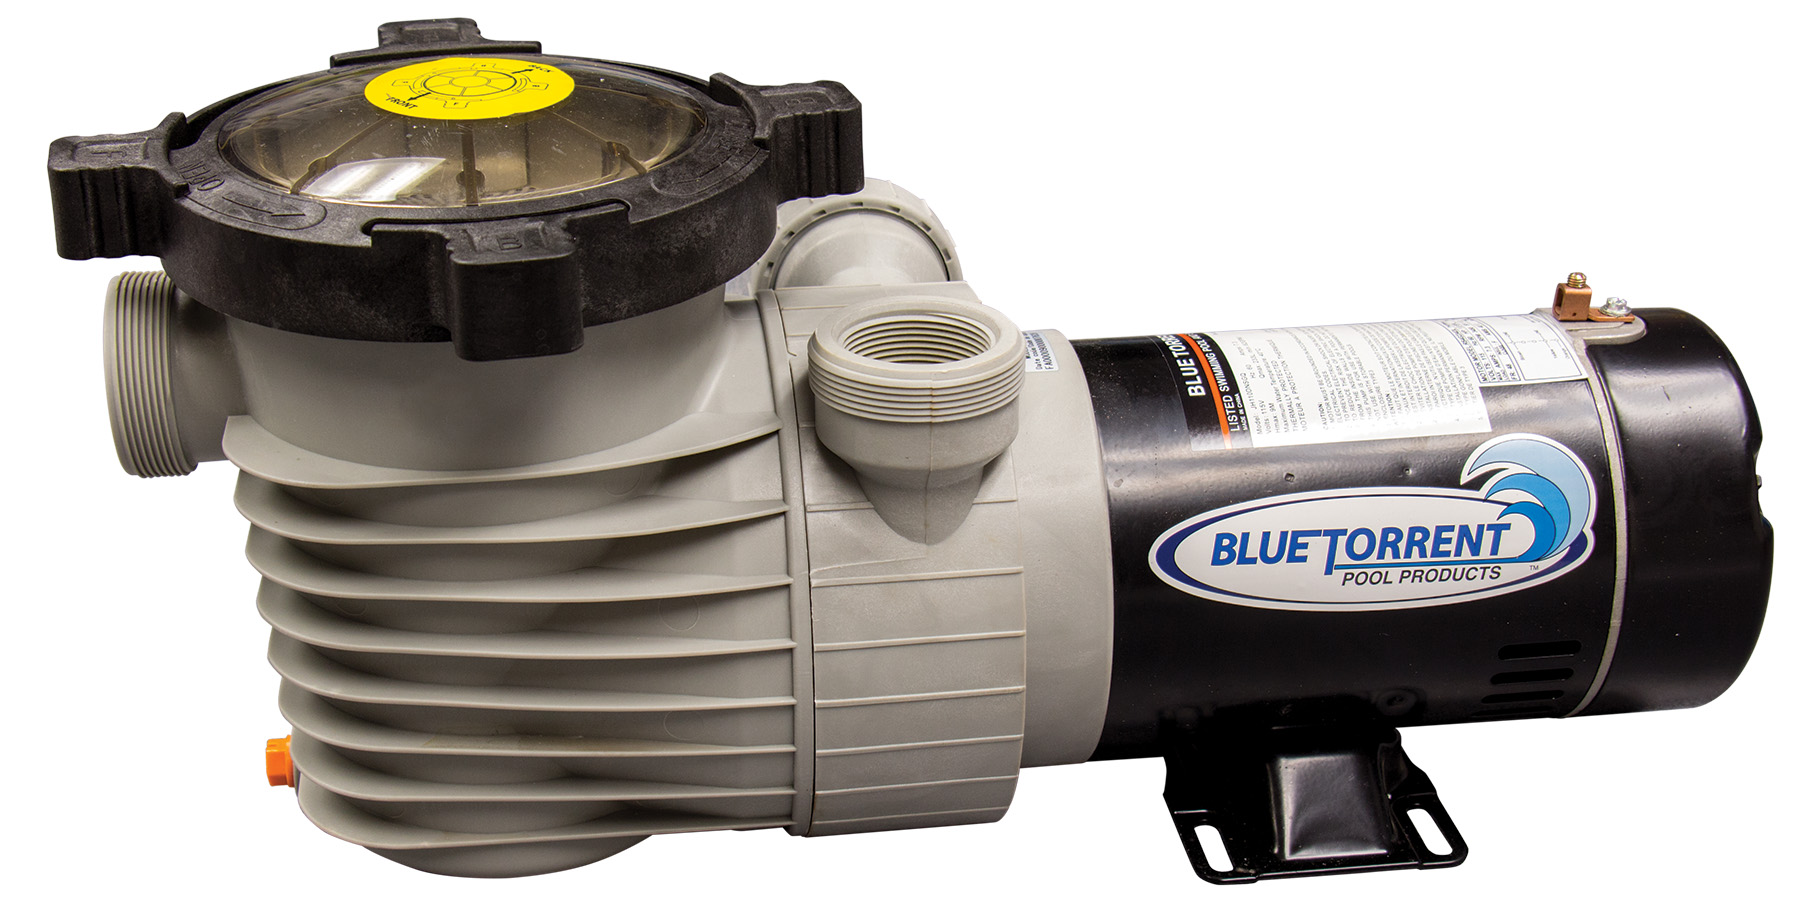 Swimming pool discounterspower clean de filter system with - Filter fur poolpumpe ...